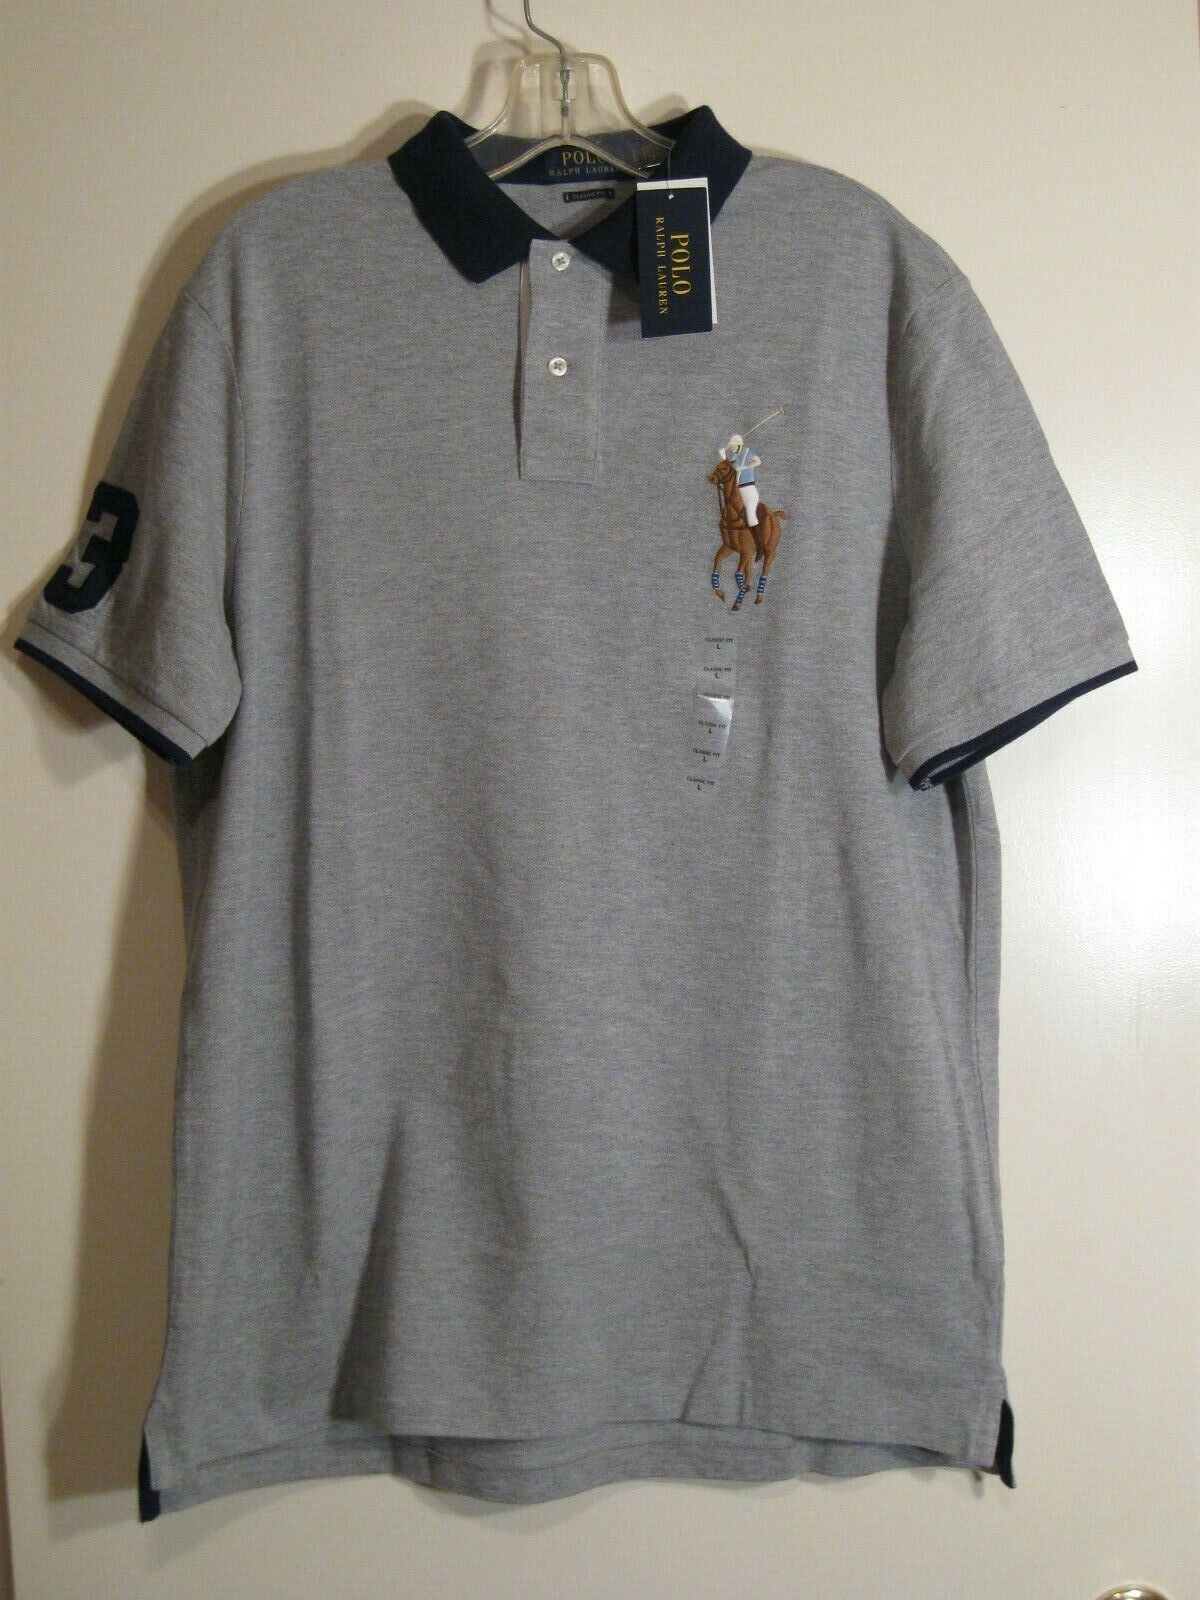 Polo Ralph Lauren Classic Fit Big Pony Polo Shirt NWT Grey Heather